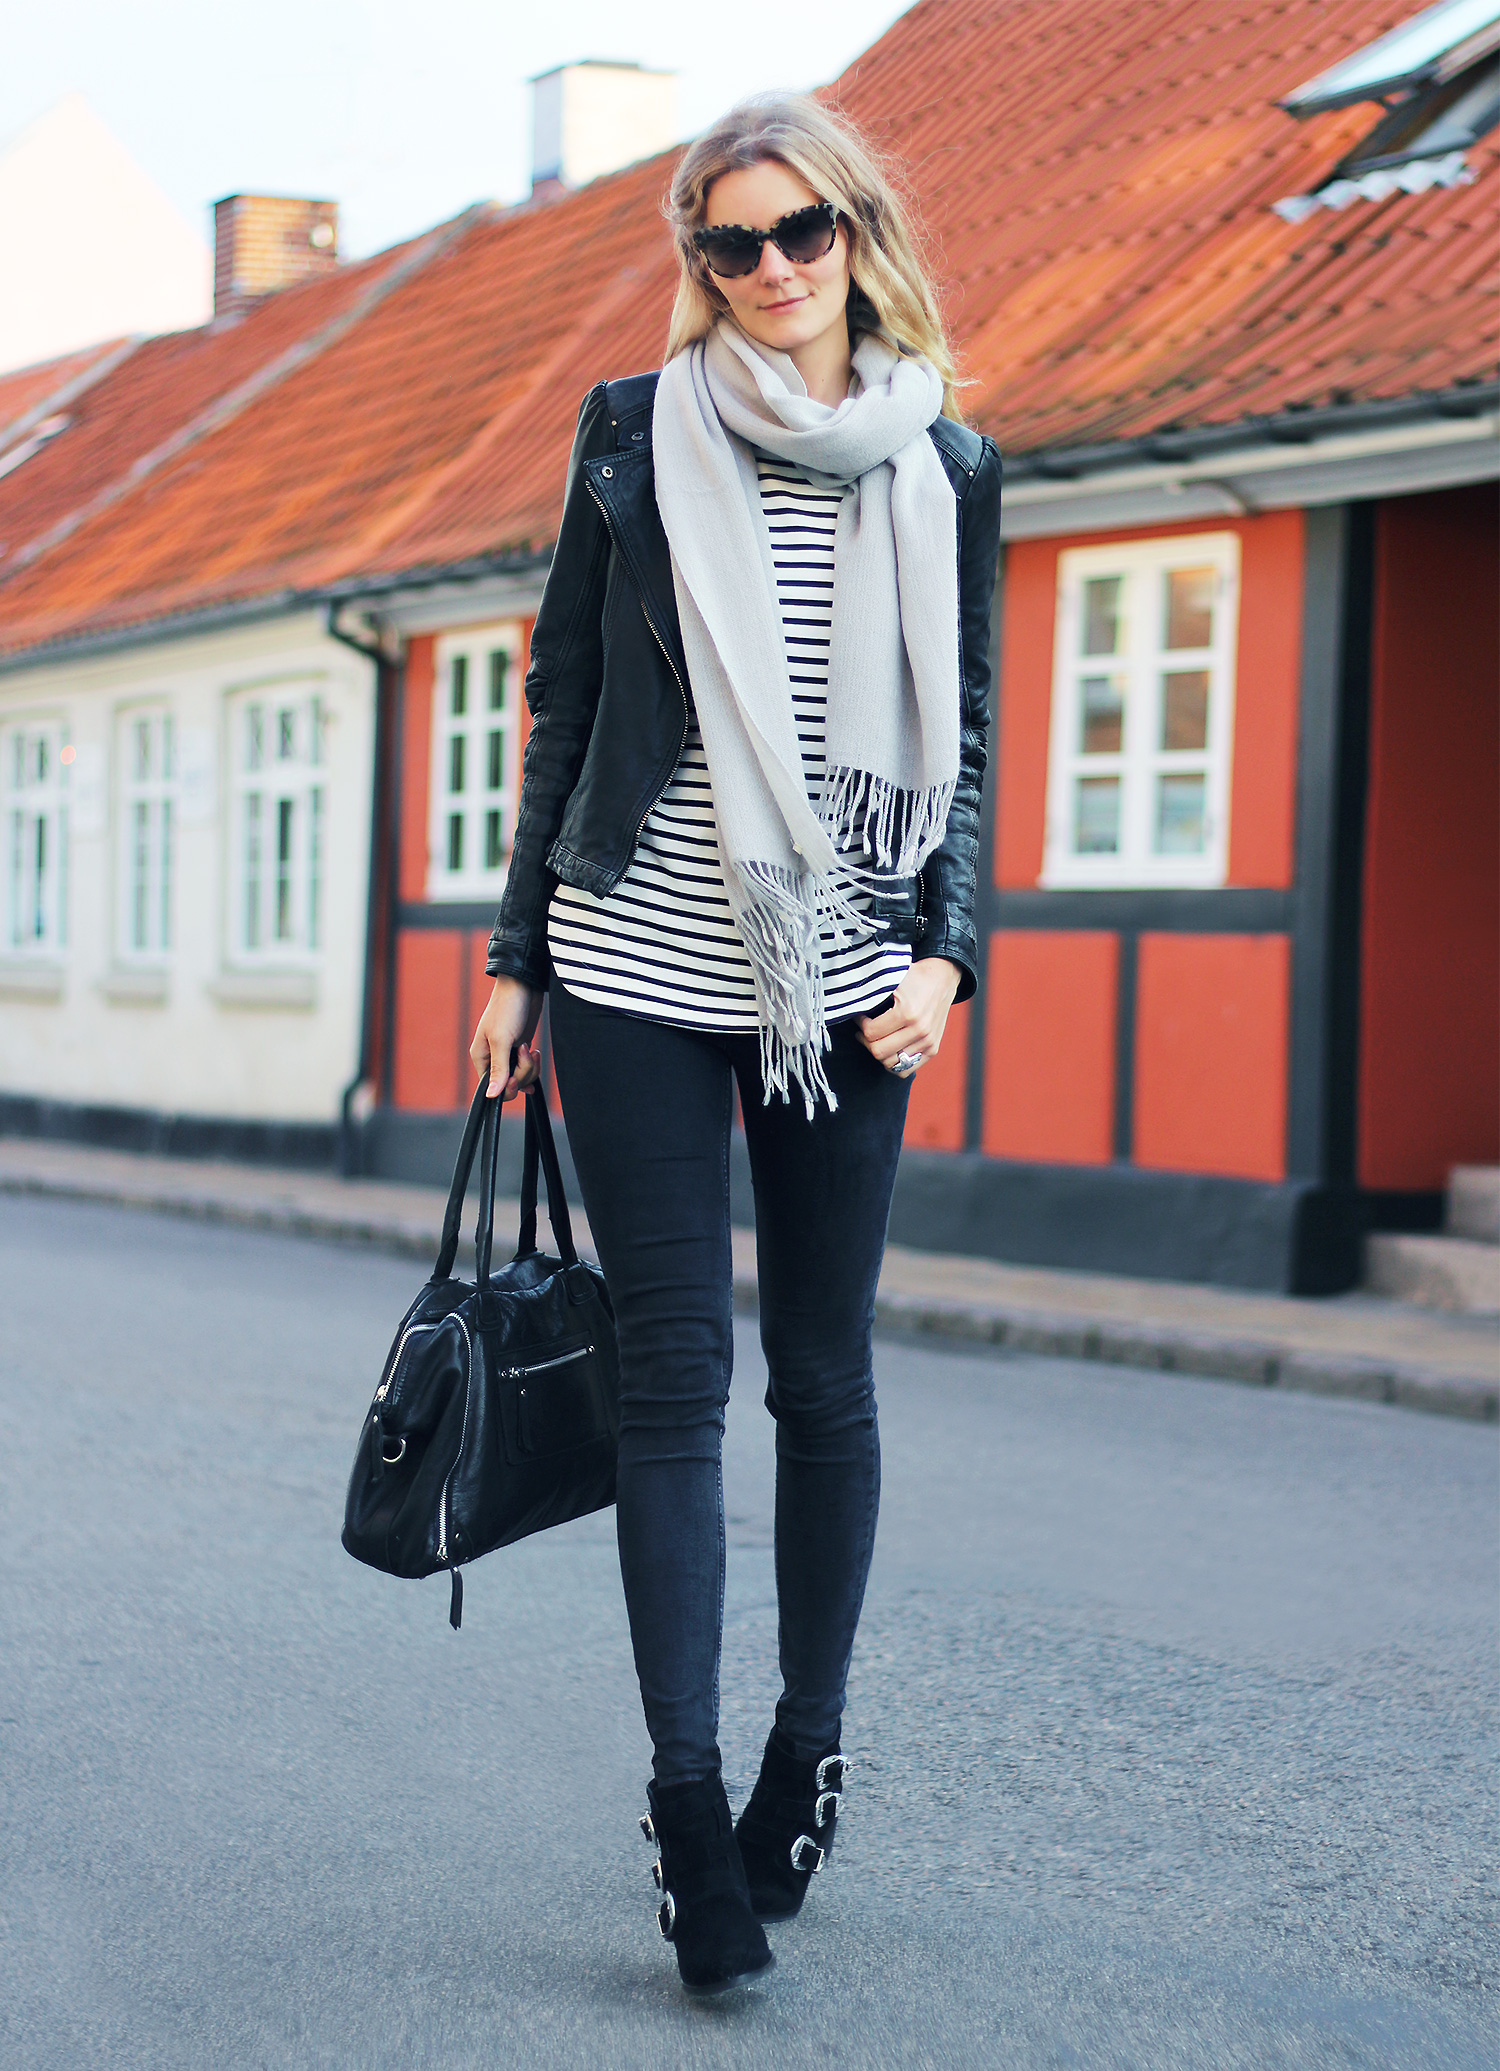 outfit@2x